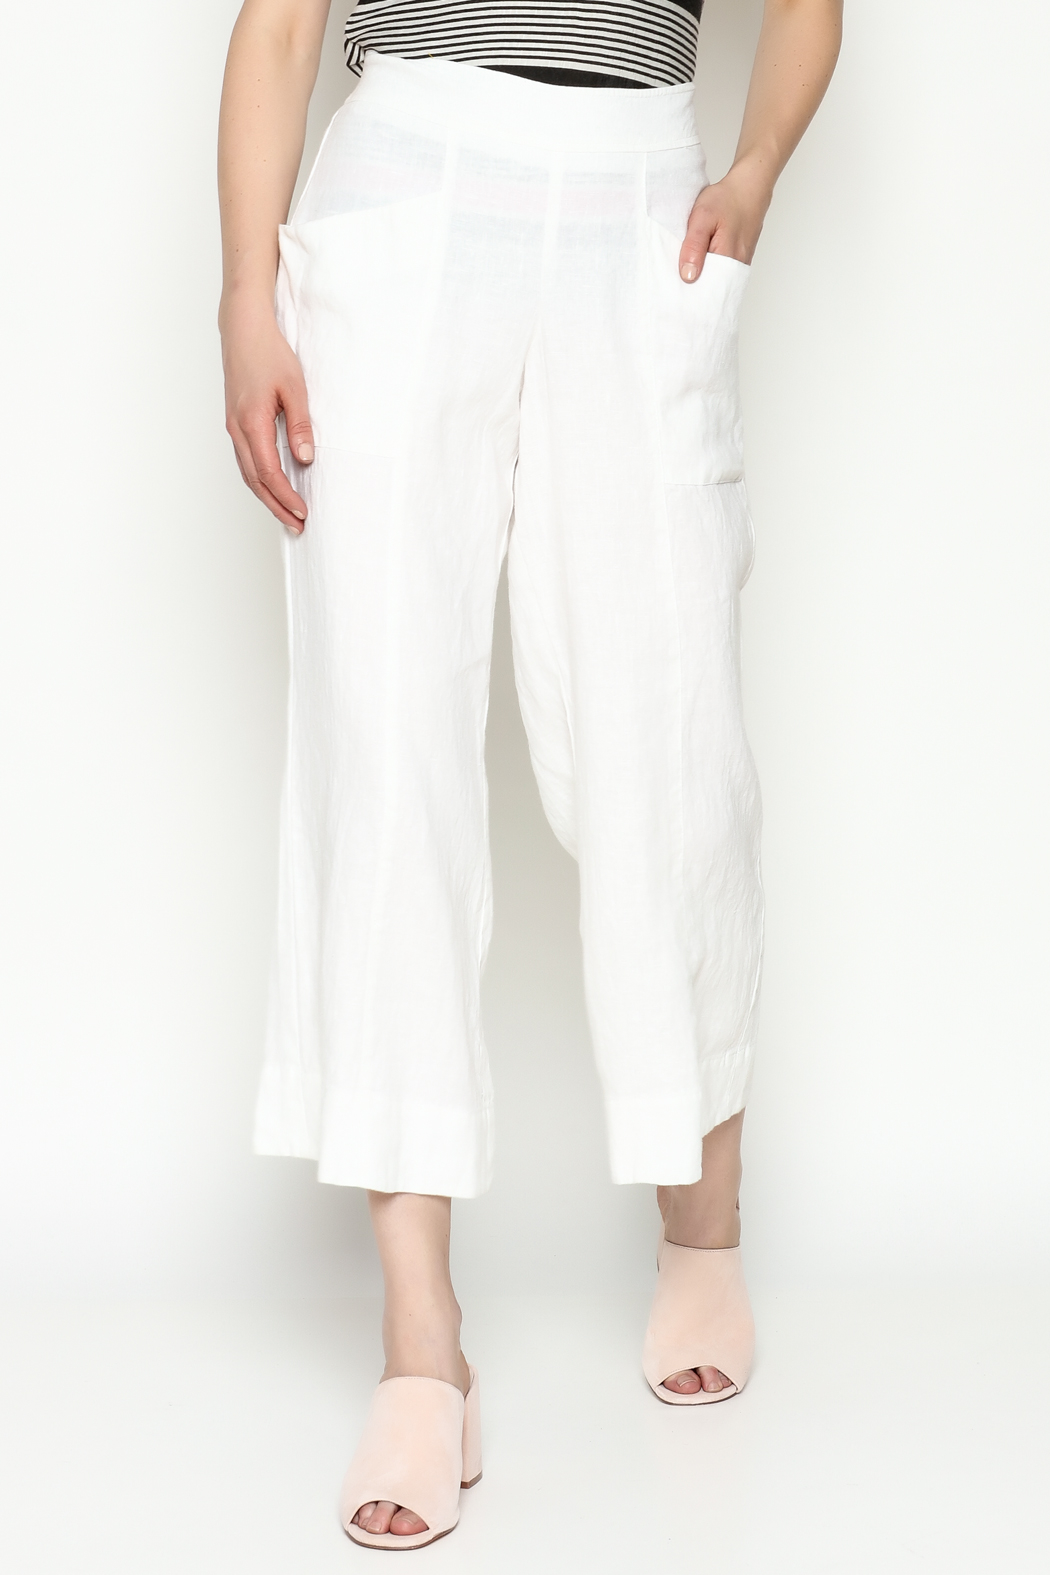 Cousin Earl White Linen Pants - Main Image